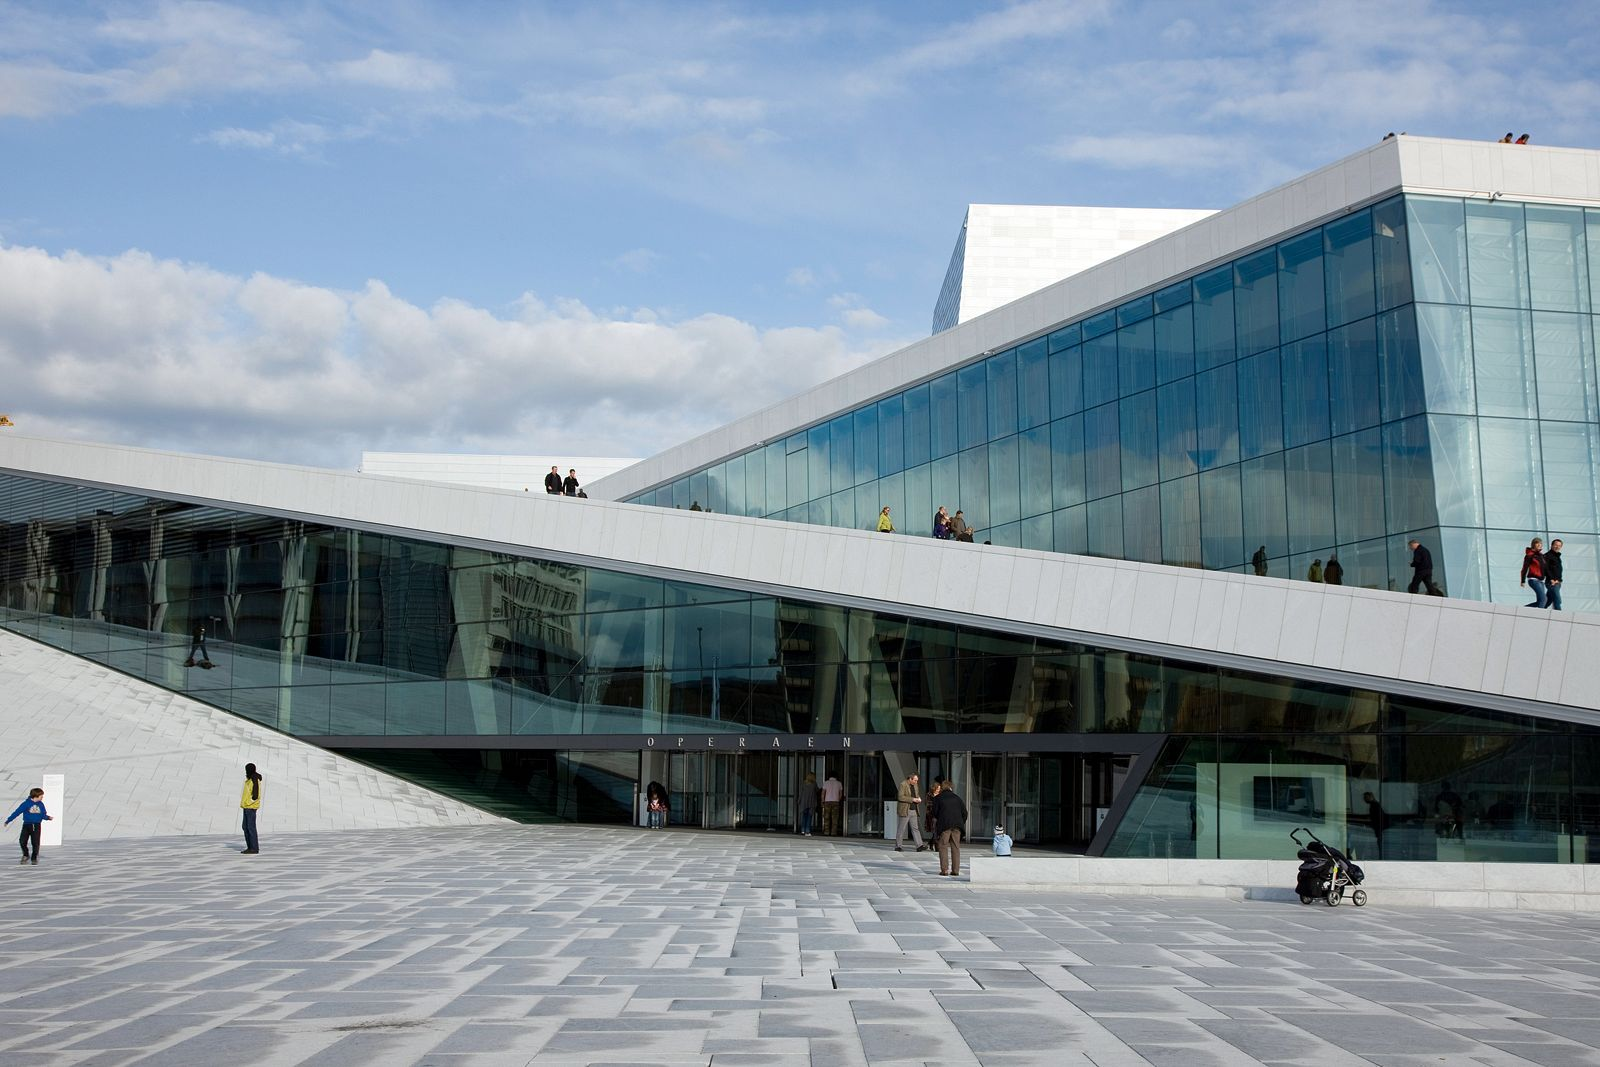 The main entrance to the new opera. Photo: Jiri Havran